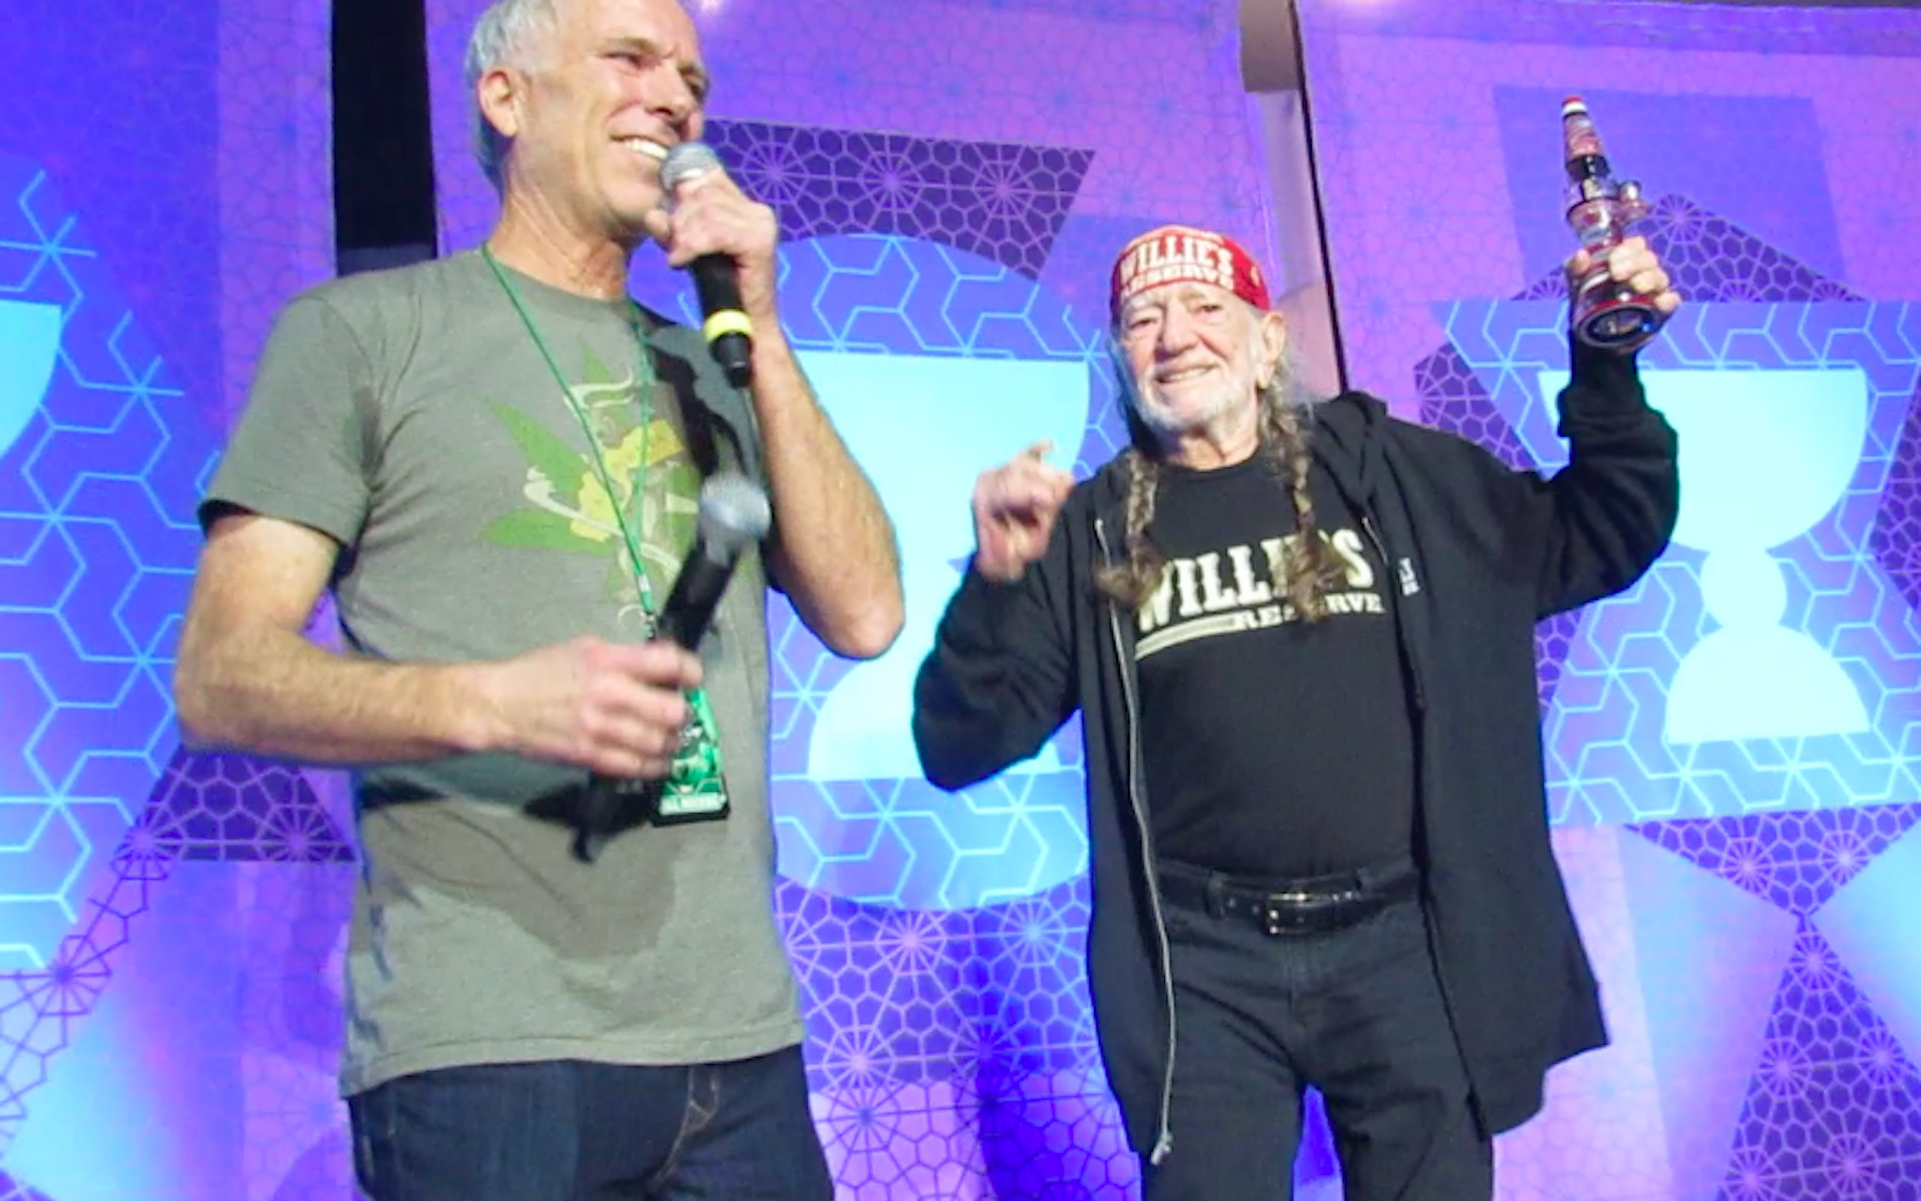 """Willie Nelson holds up his award, a custom Bluegrass """"lamp"""" bubbler. Cup organizer Tim Blake has been trying to book Willie for years. (David Downs/Leafly)"""